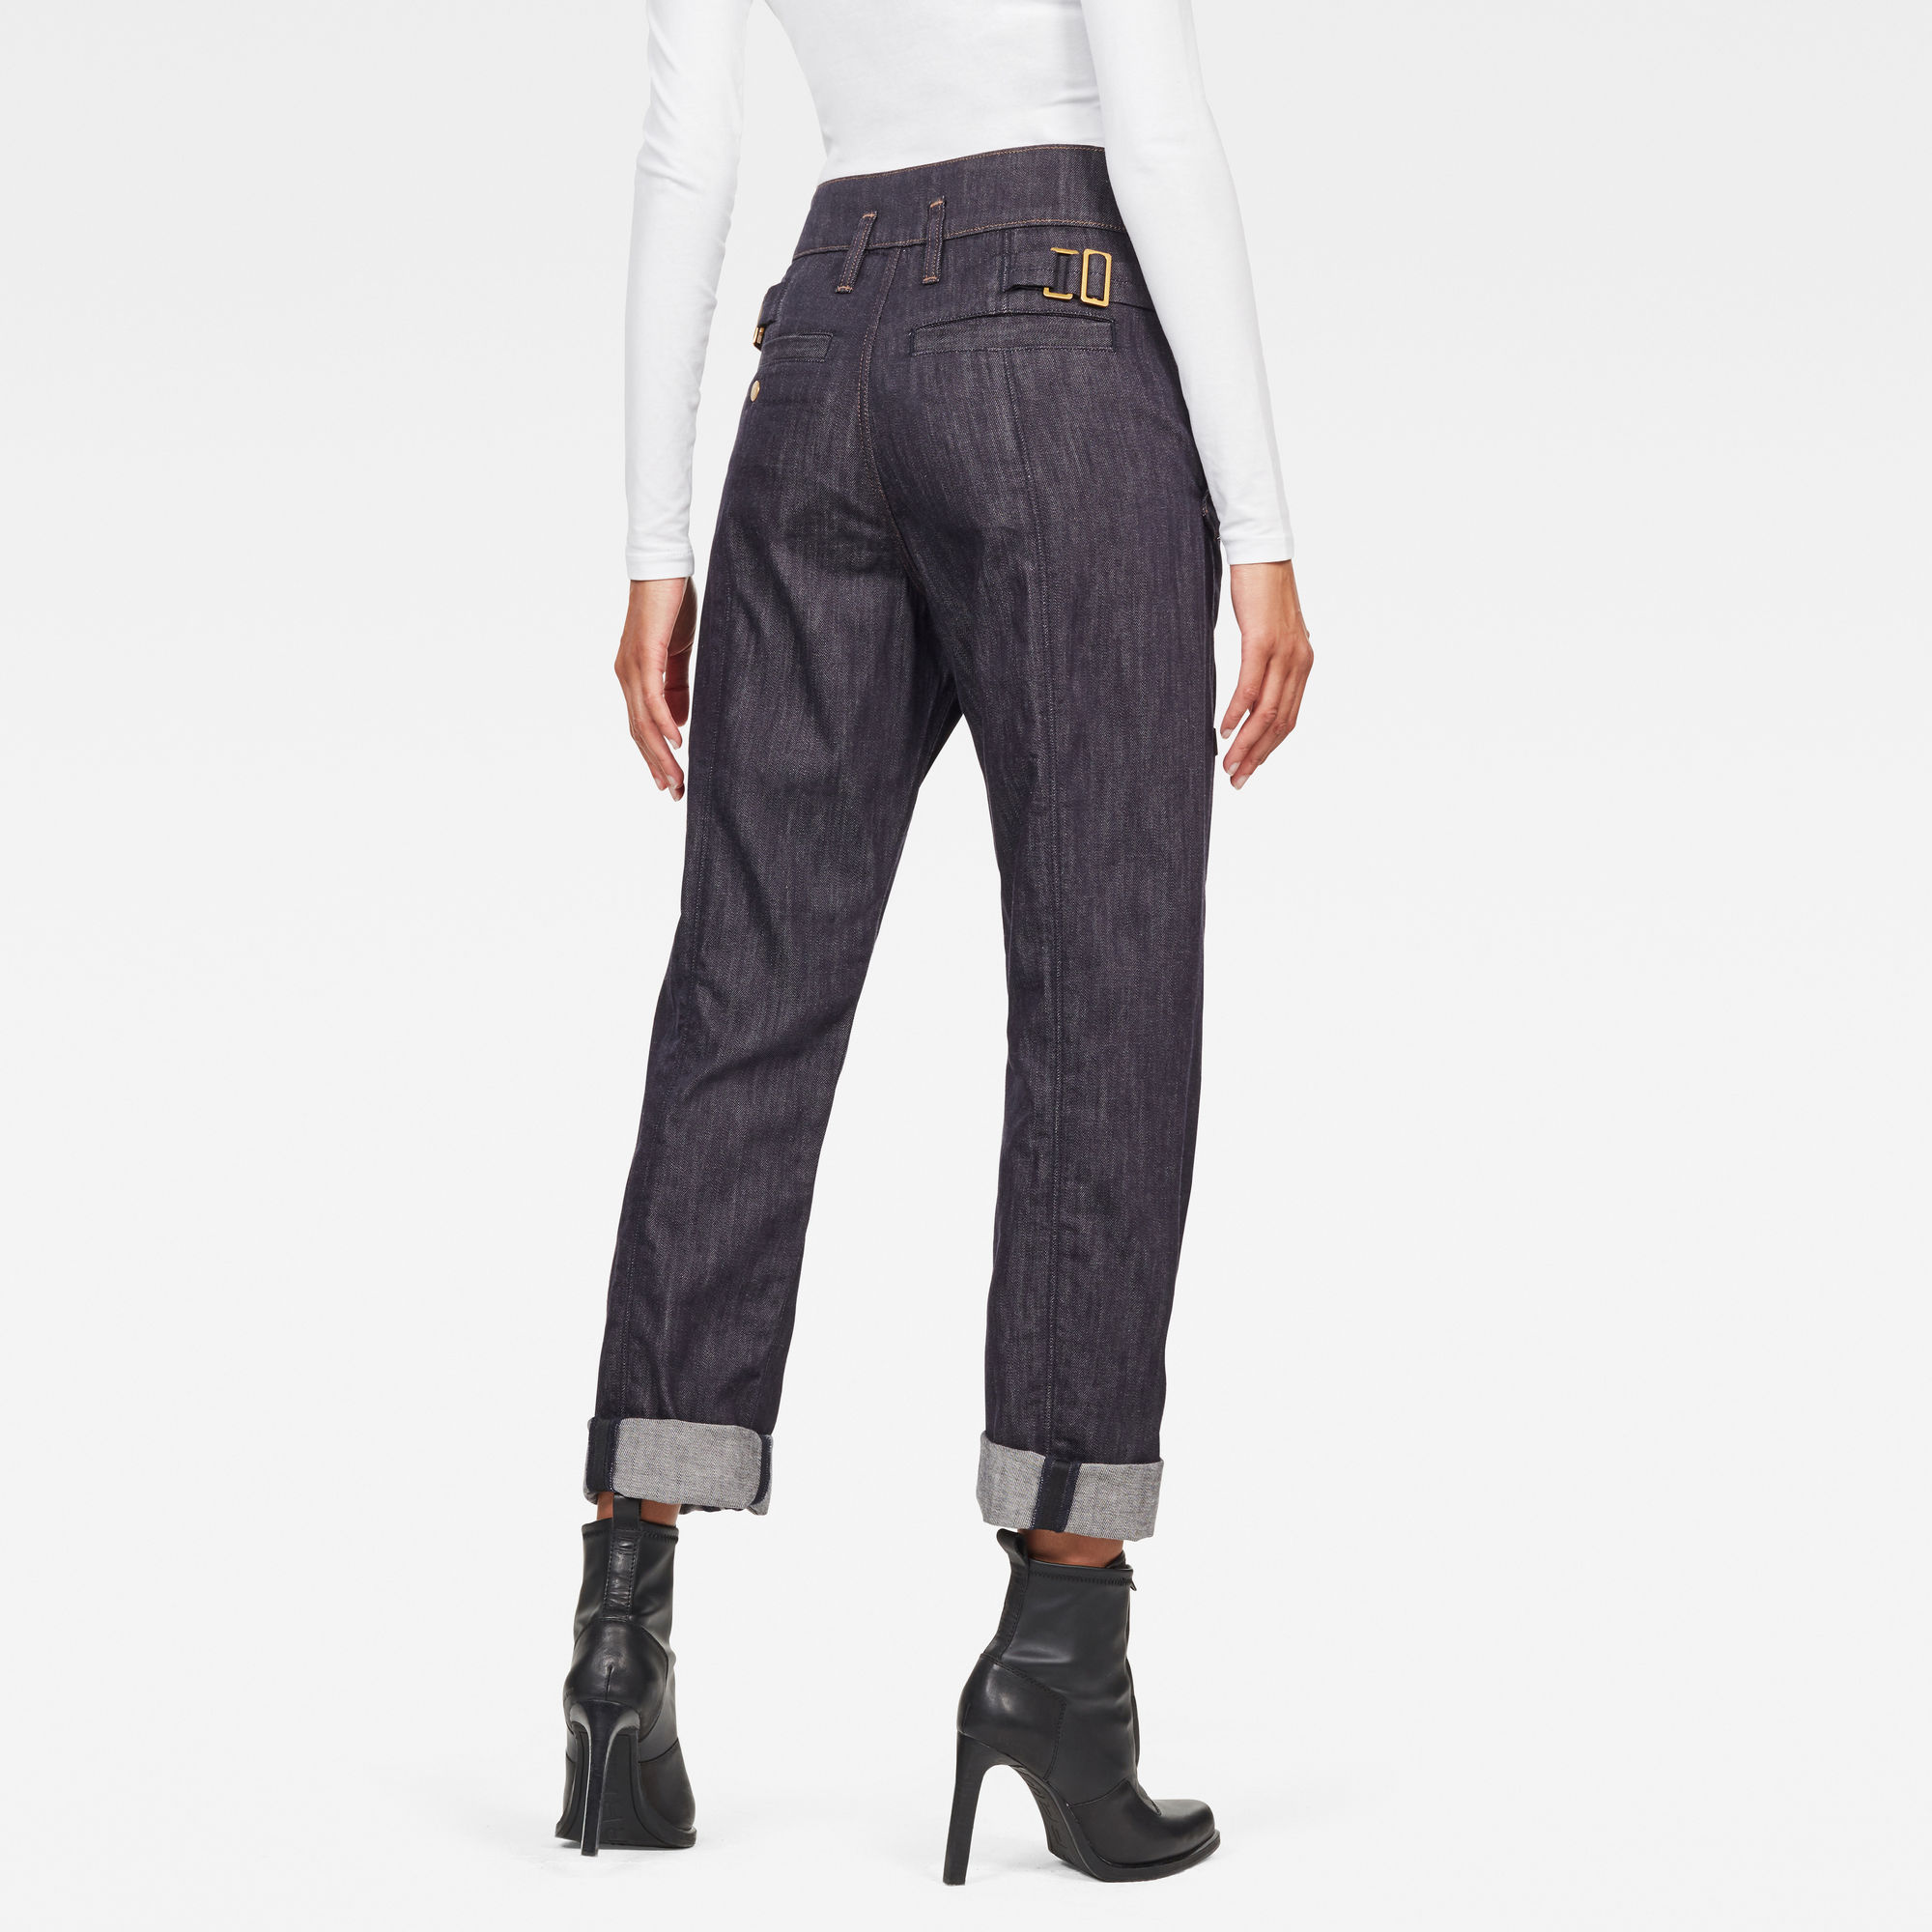 G-Star RAW GSRR Lanc Ultra High Straight Broek